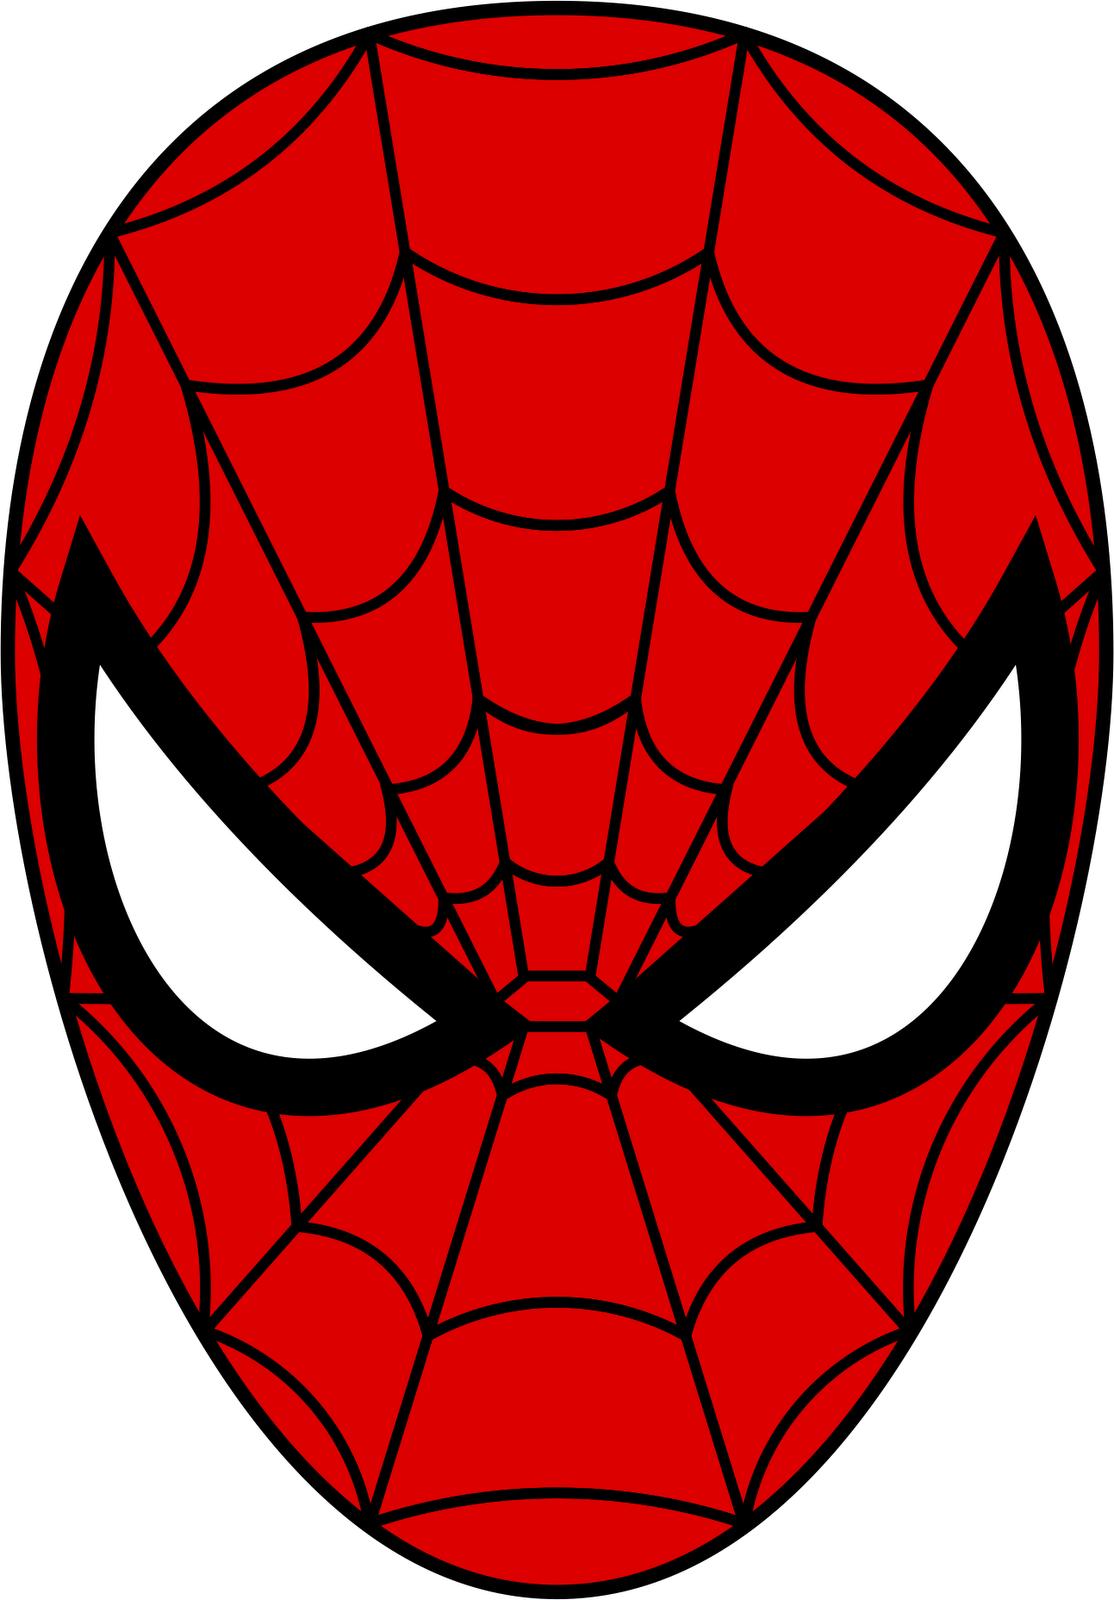 Head clipart hulk. Spider man mask from